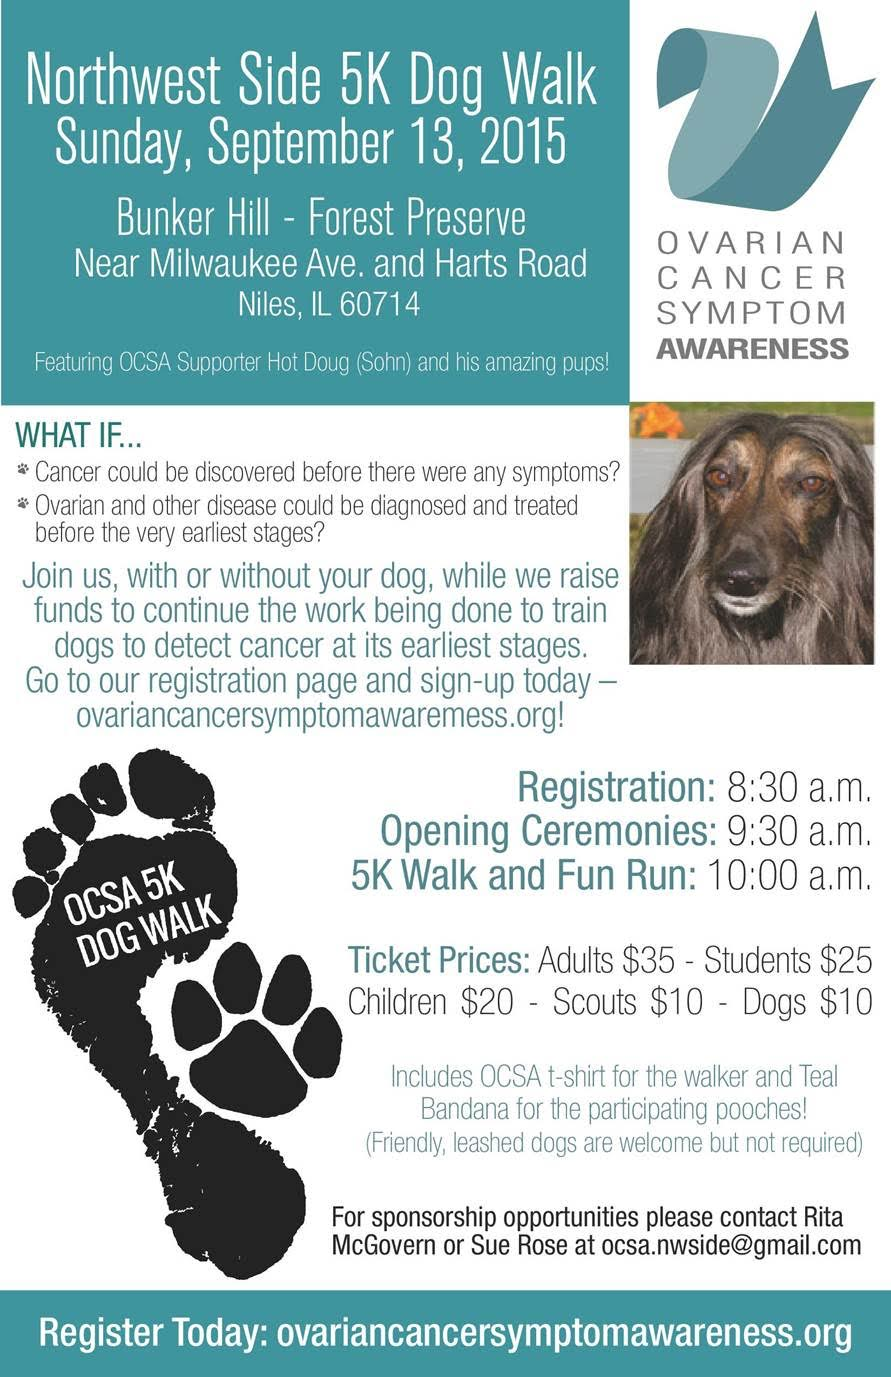 Ovarian Cancer Symptom Awareness Walk